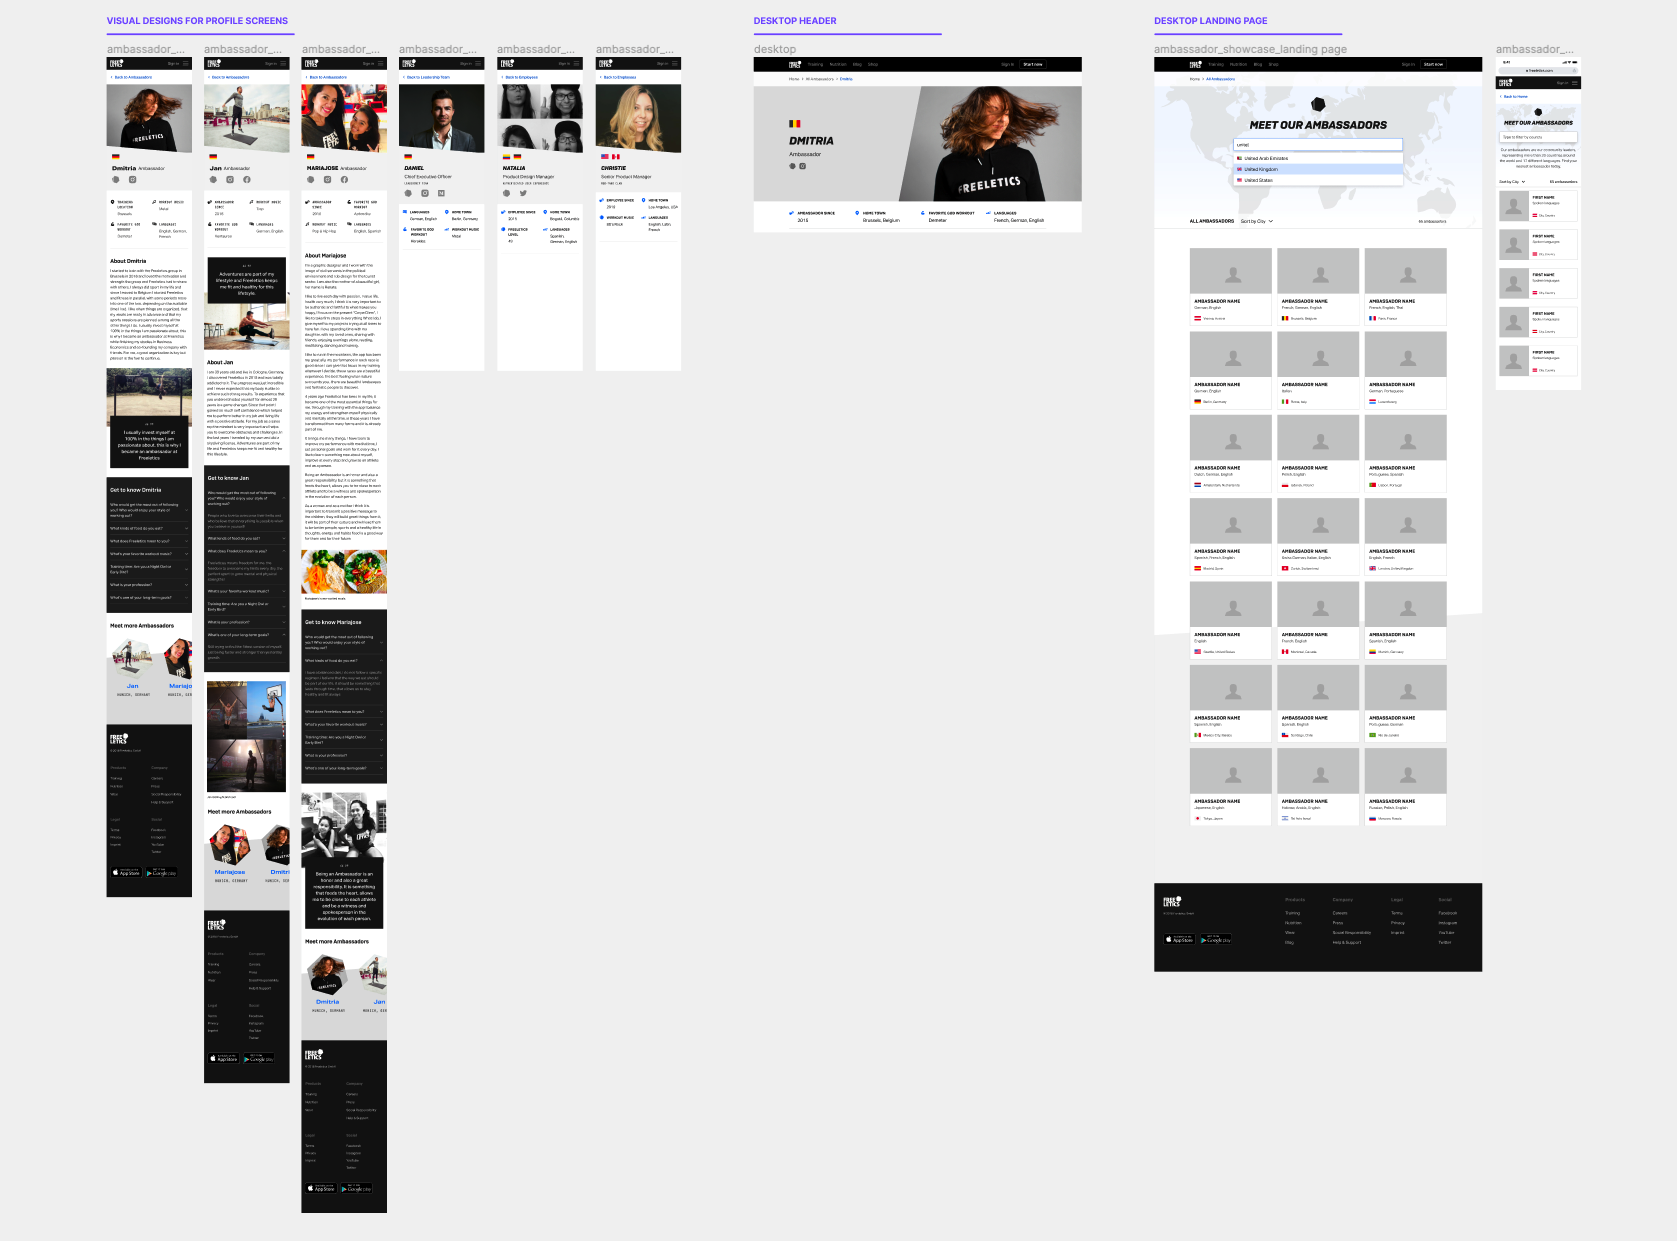 Multiple visual design explorations of the ambassador page designs